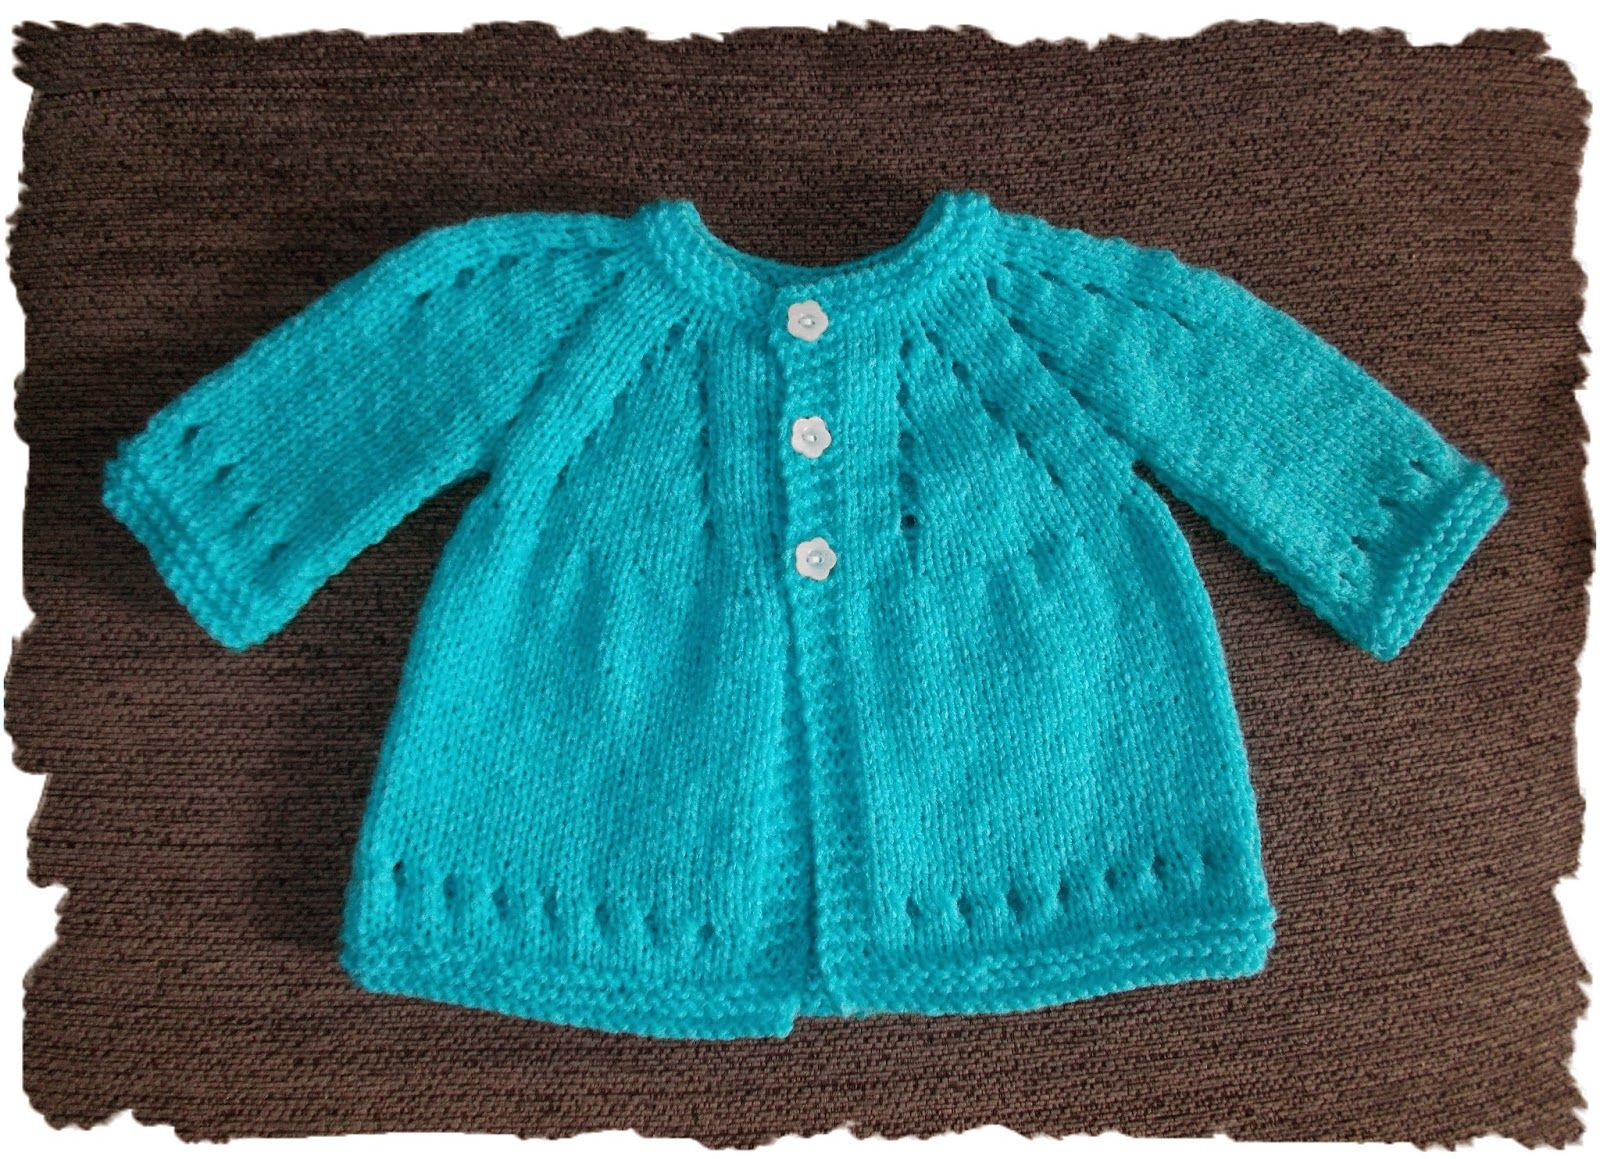 Free all in one top down with sleeves newborn free pattern baby sweater patterns bankloansurffo Image collections